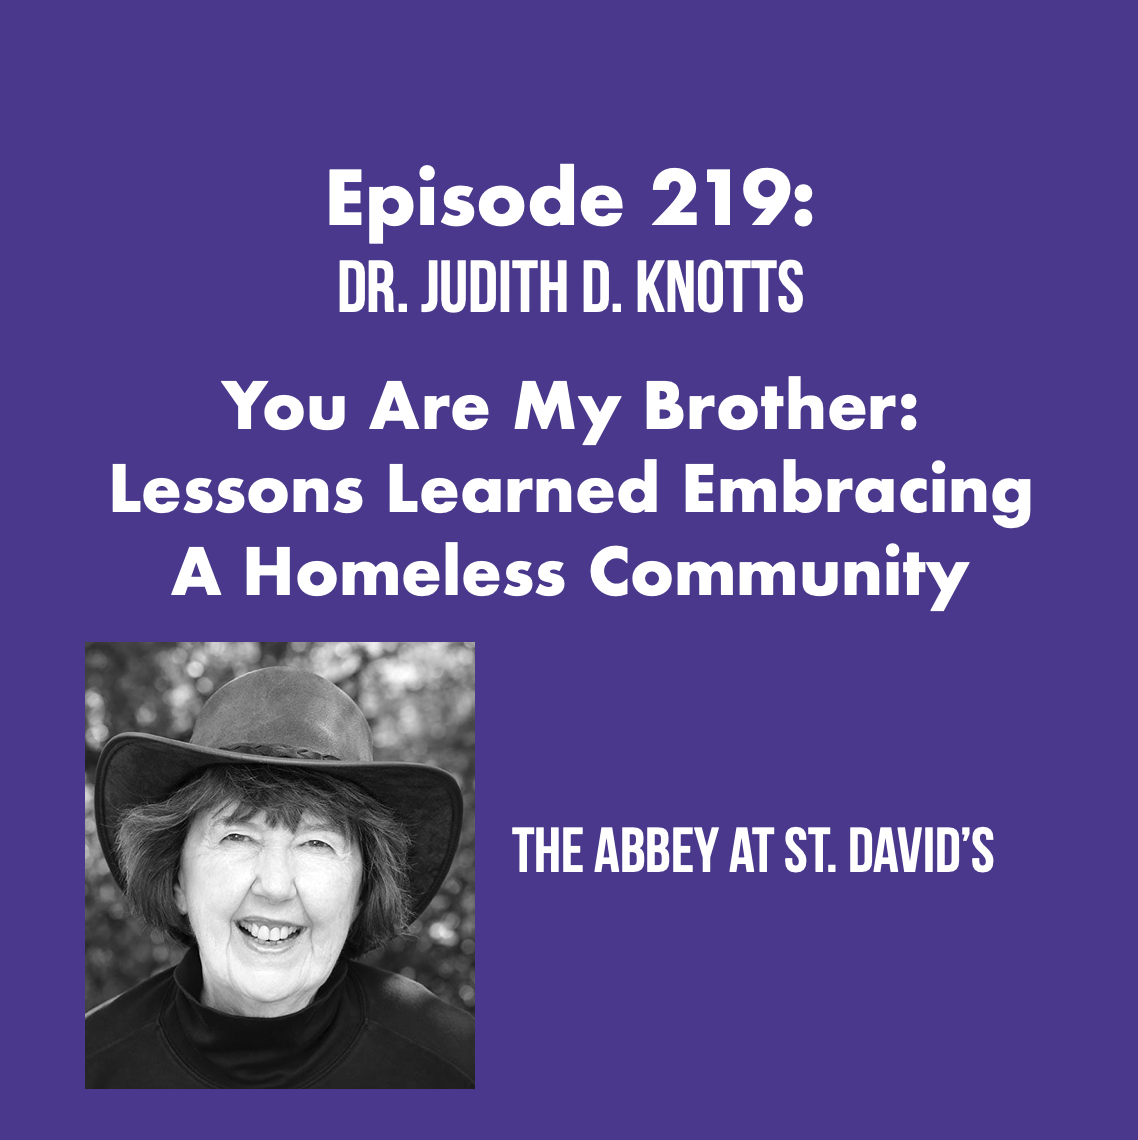 You Are My Brother: Lessons Learned Embracing a Homeless Community with Dr. Judith D. Knotts